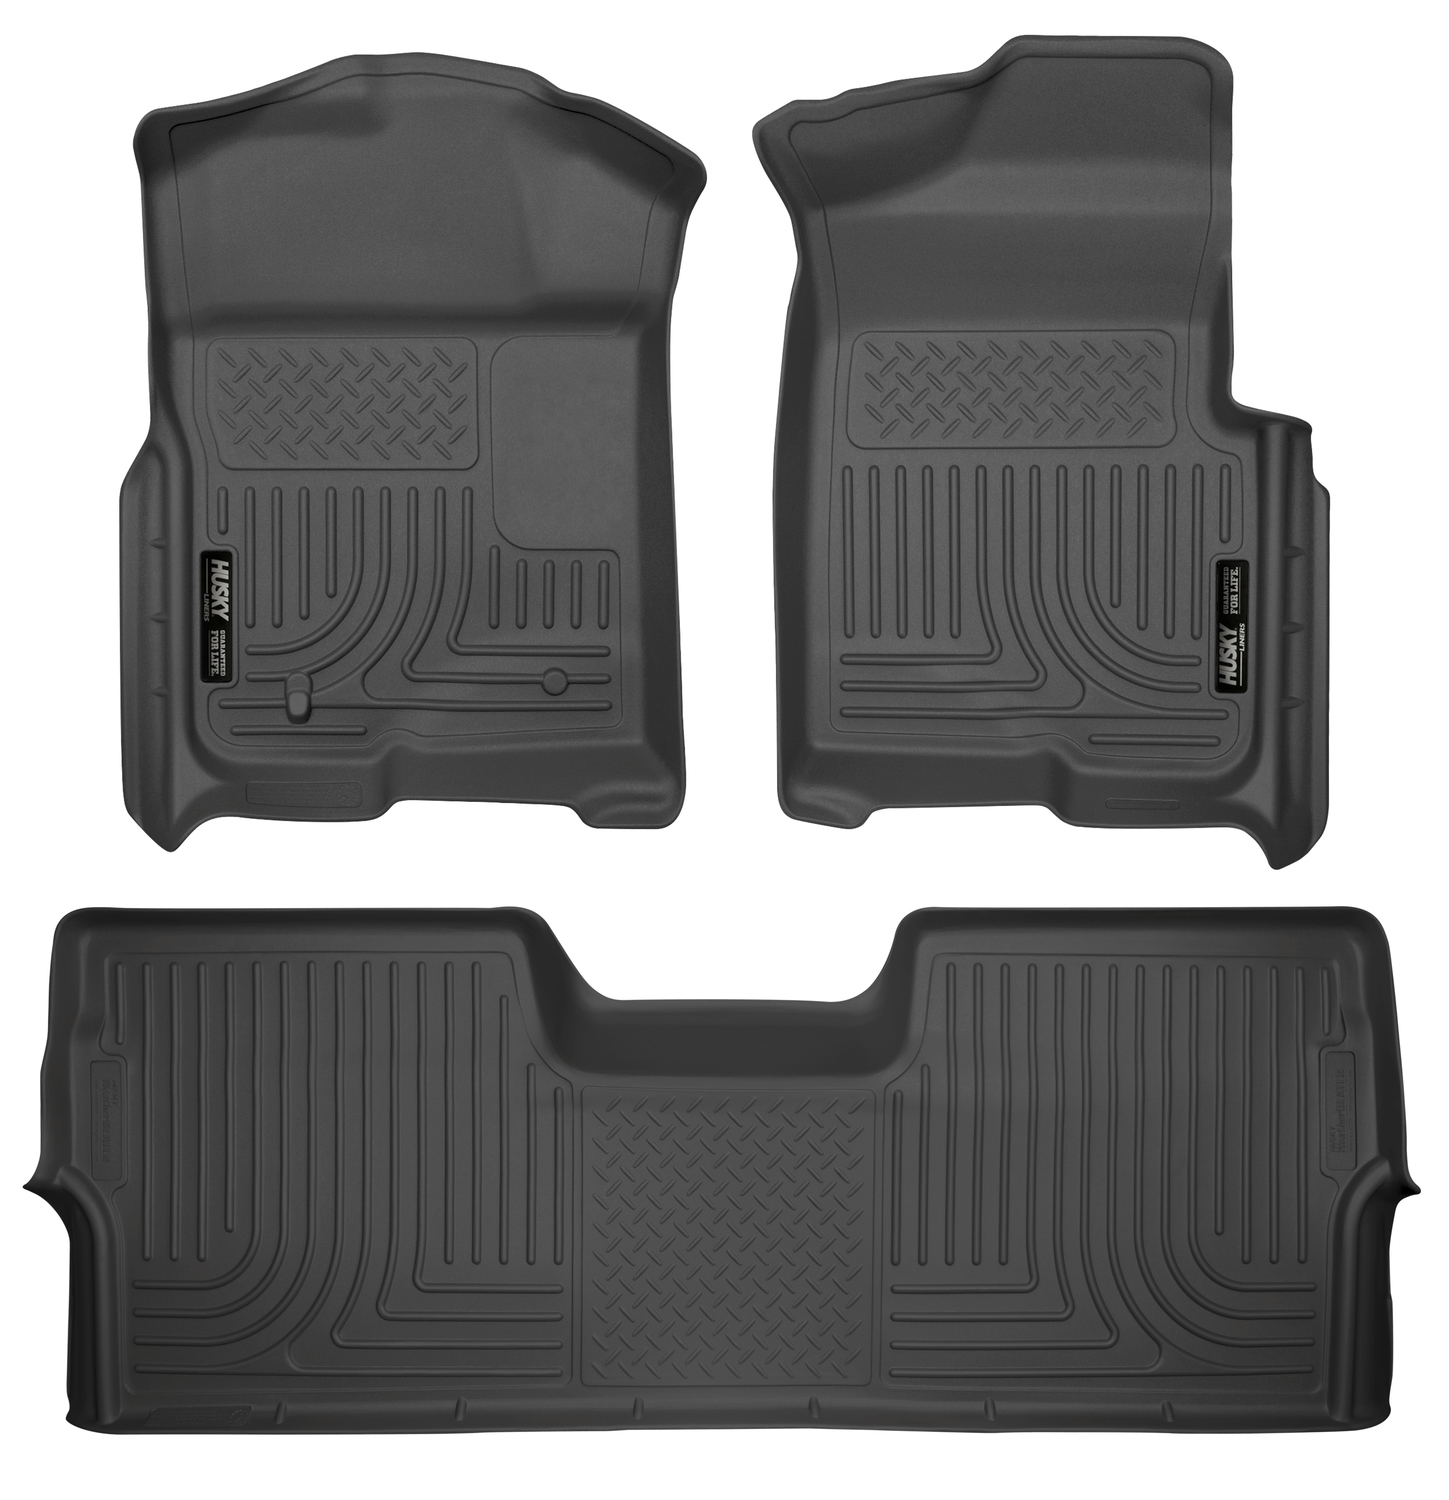 black styles lhd floor mats pict fits incredible a inspiration winter audi and ad for uncategorized xcode car